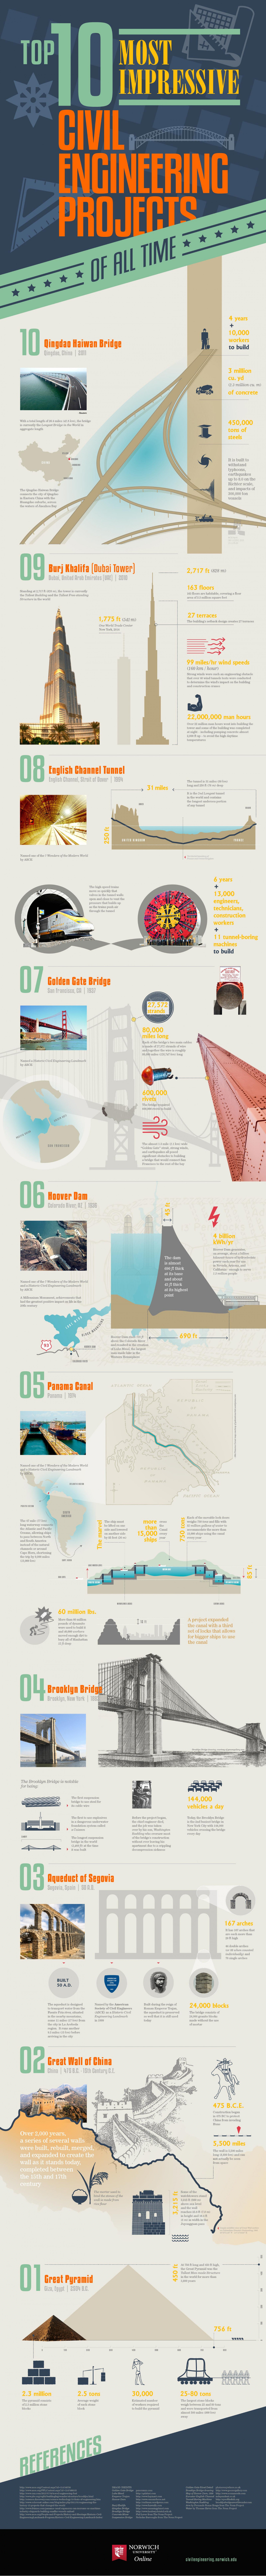 top-10-most-impressive-civil-engineering-projects